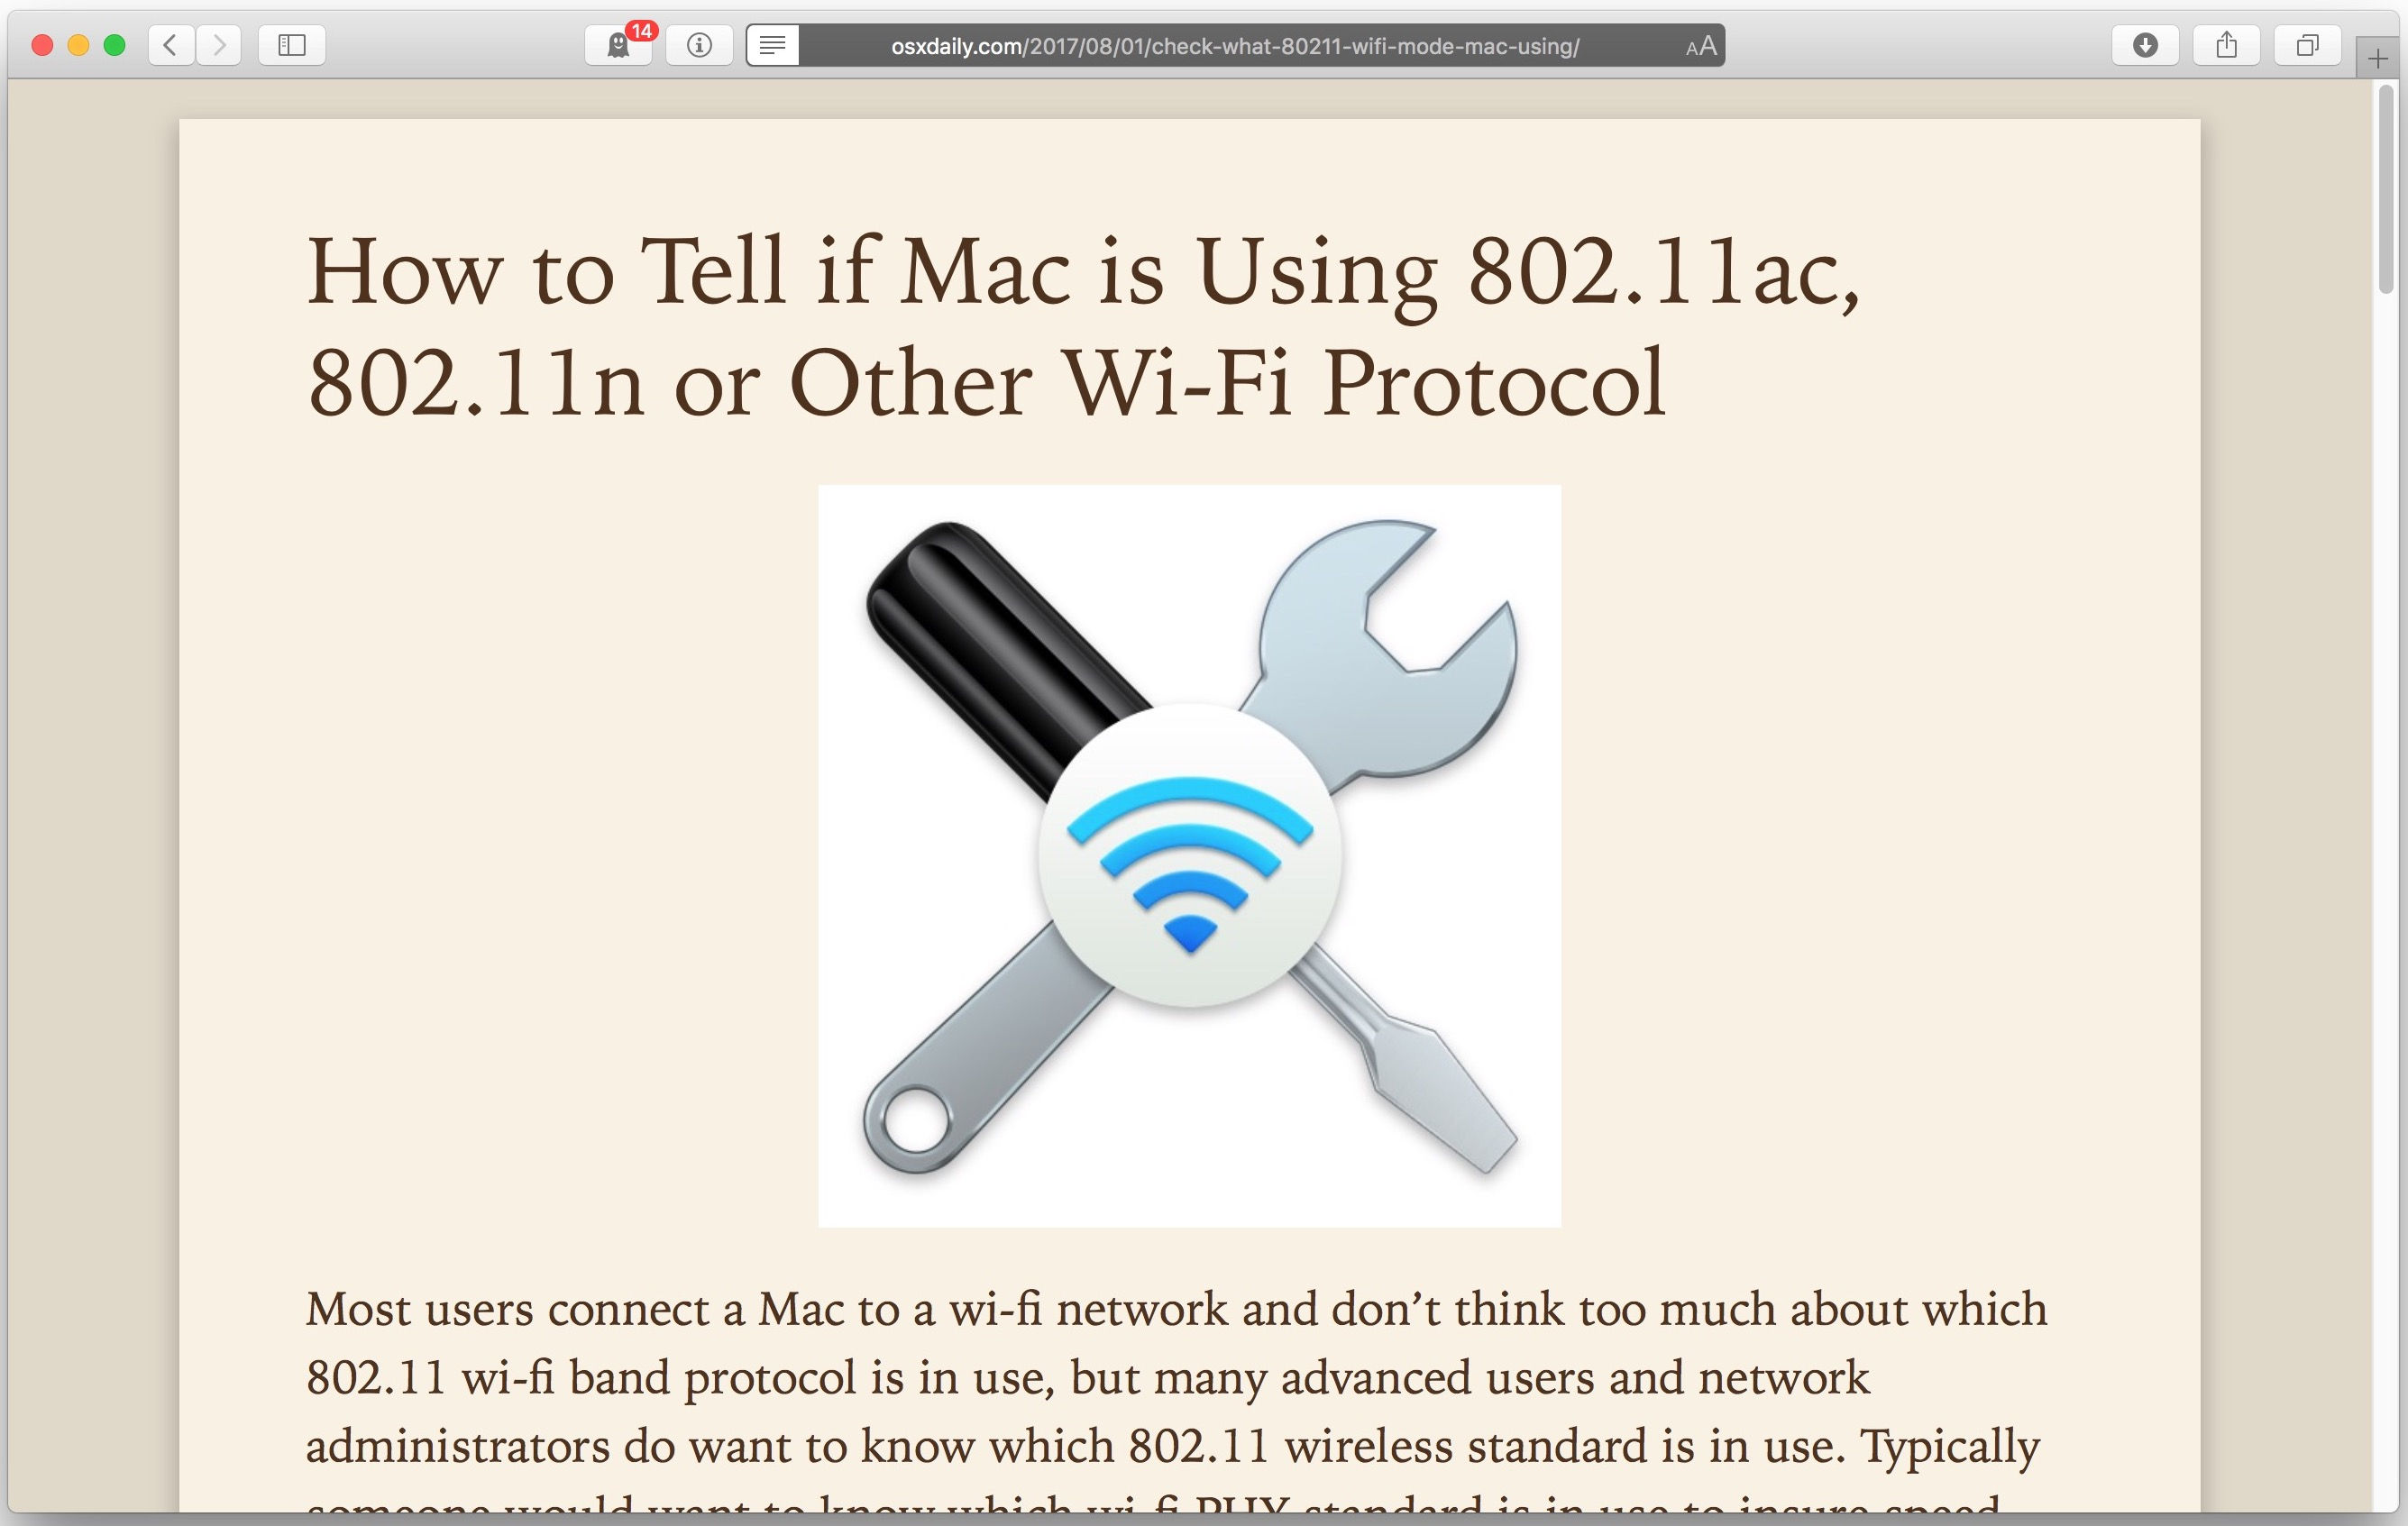 Print an article or web page in a simplified form without ads on Mac